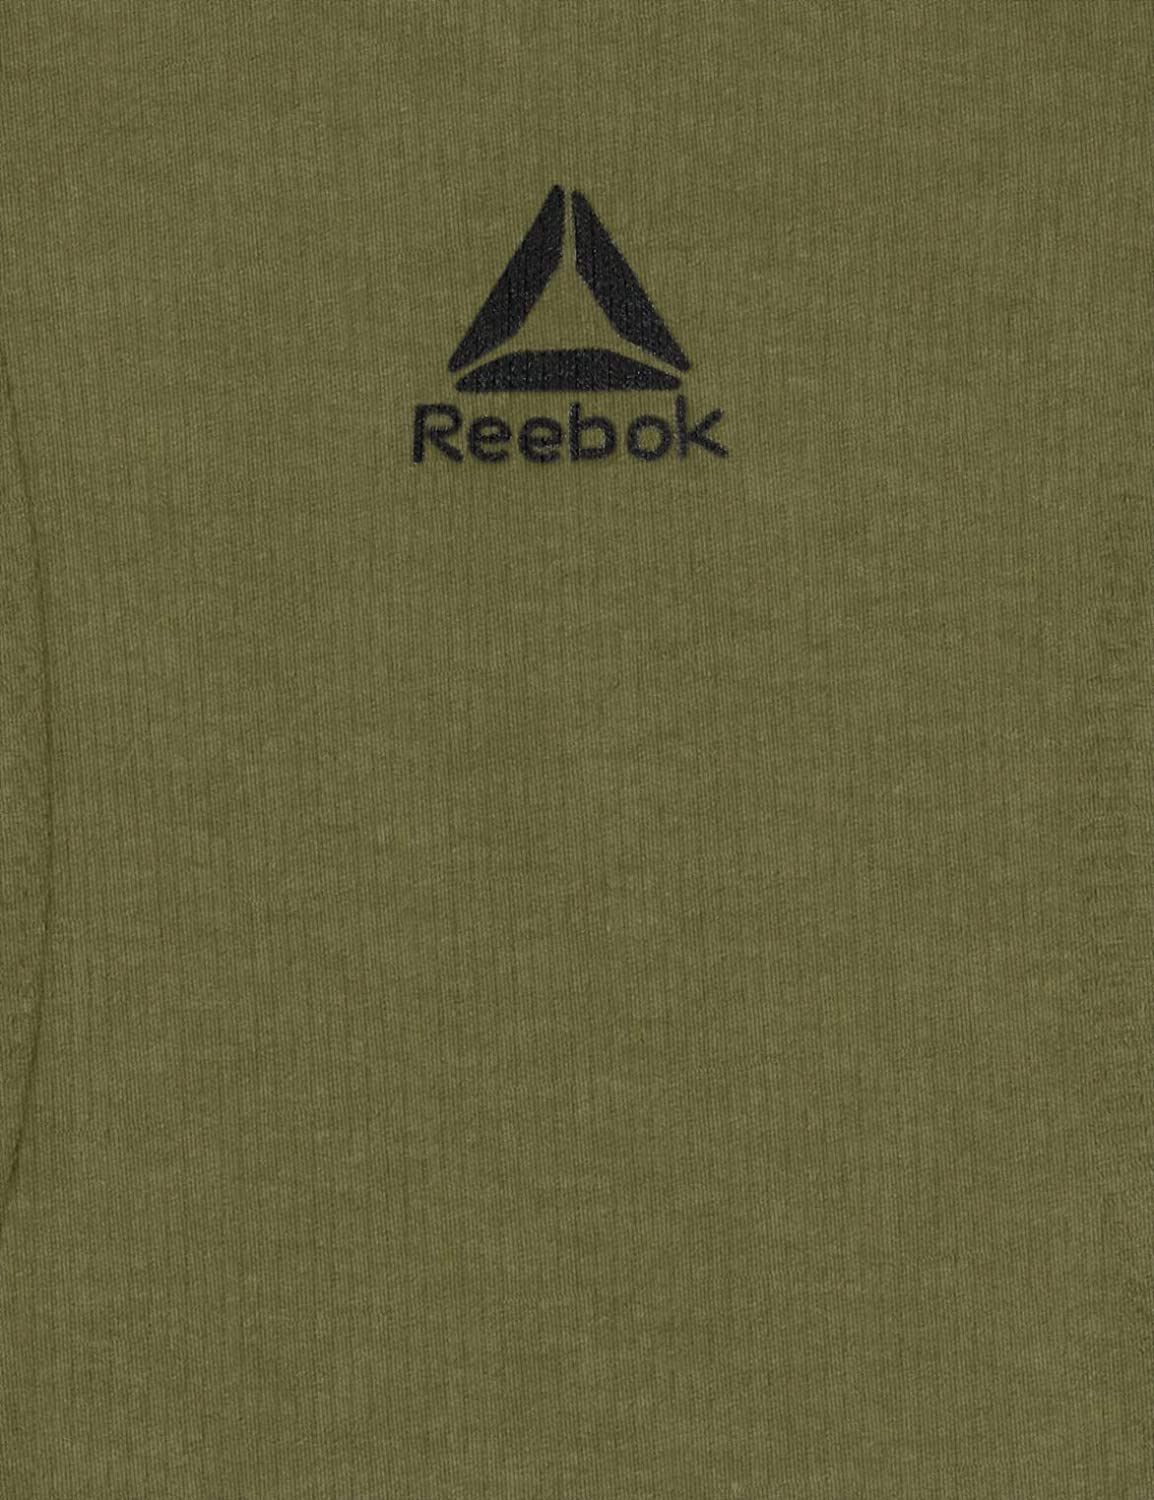 Reebok RC Authentic Crop Tank Top Mujer